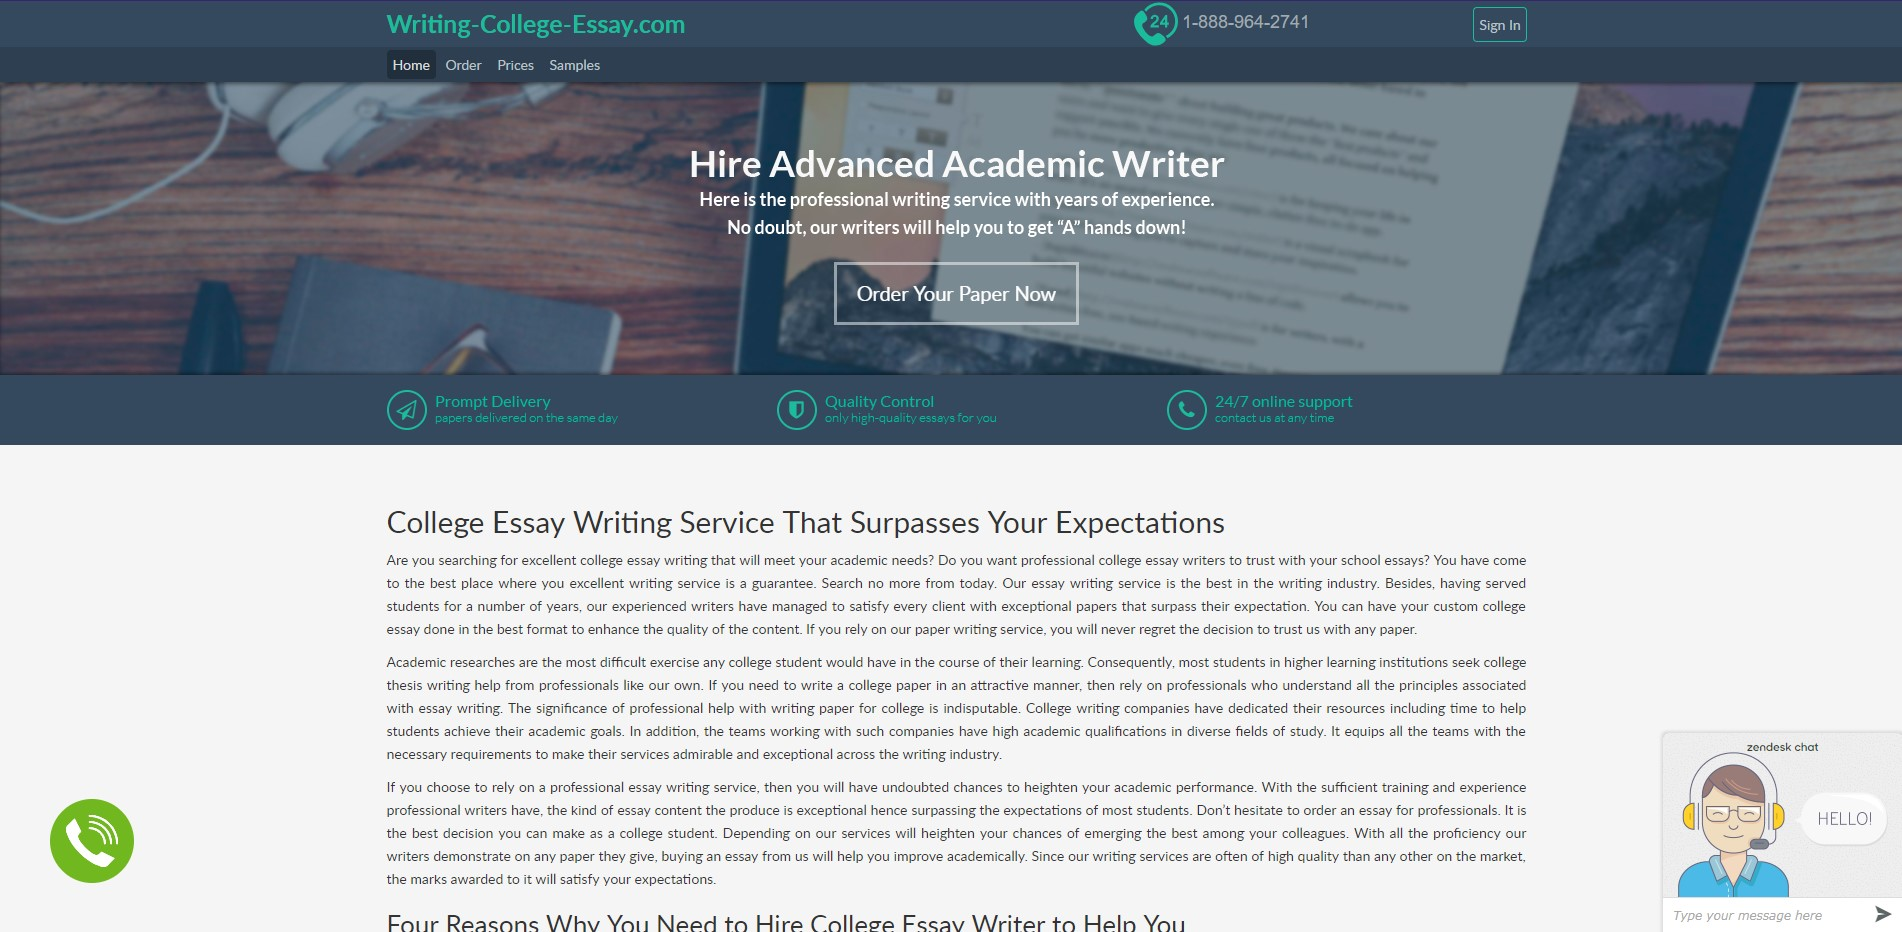 Writing-college-essay.com - review